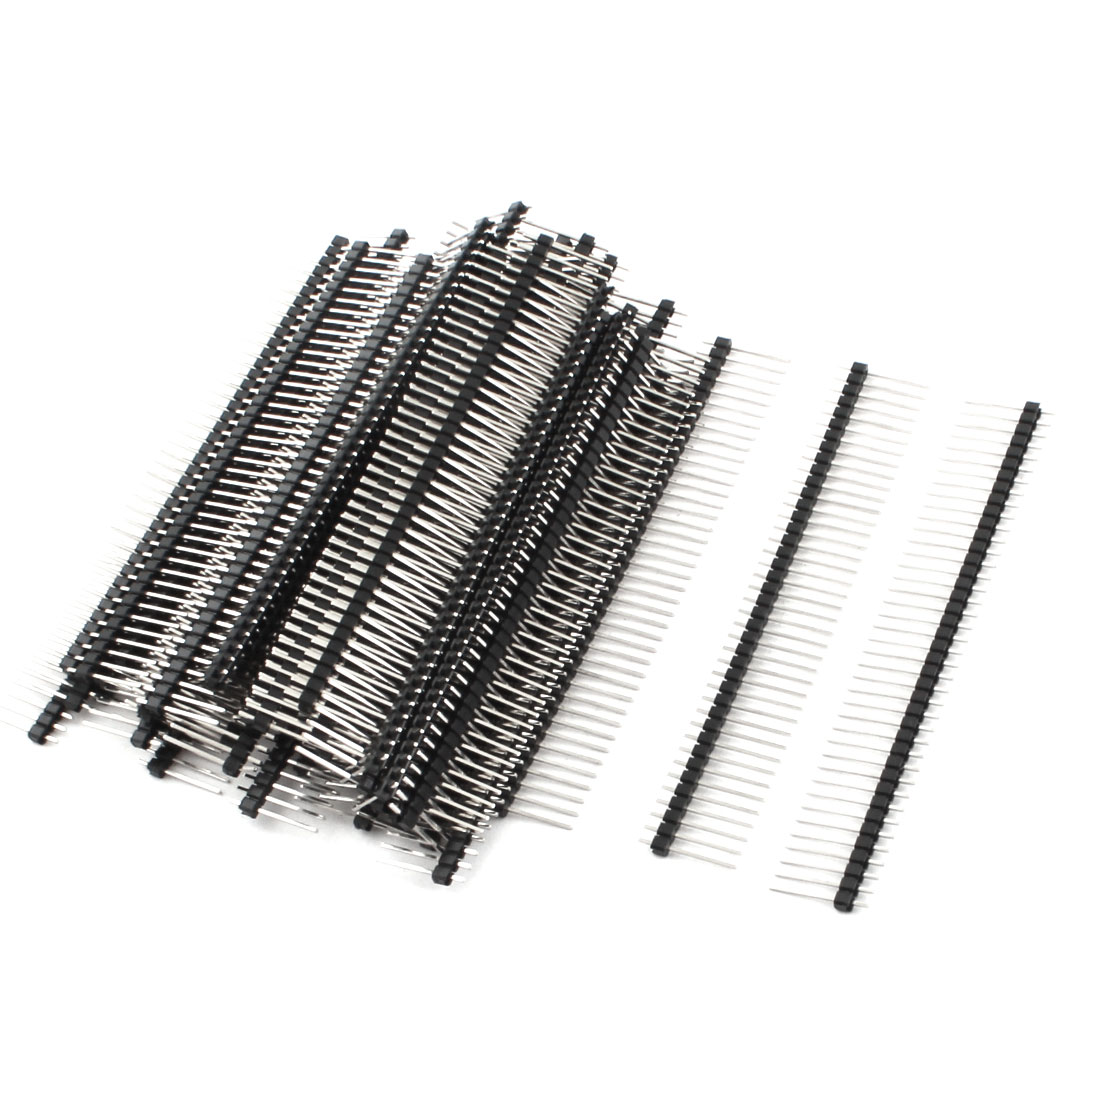 50Pcs 2.54mm Pitch Single Row 40-Pin Male Through Hole Mount Pin Header Connector Strip 17mm Length